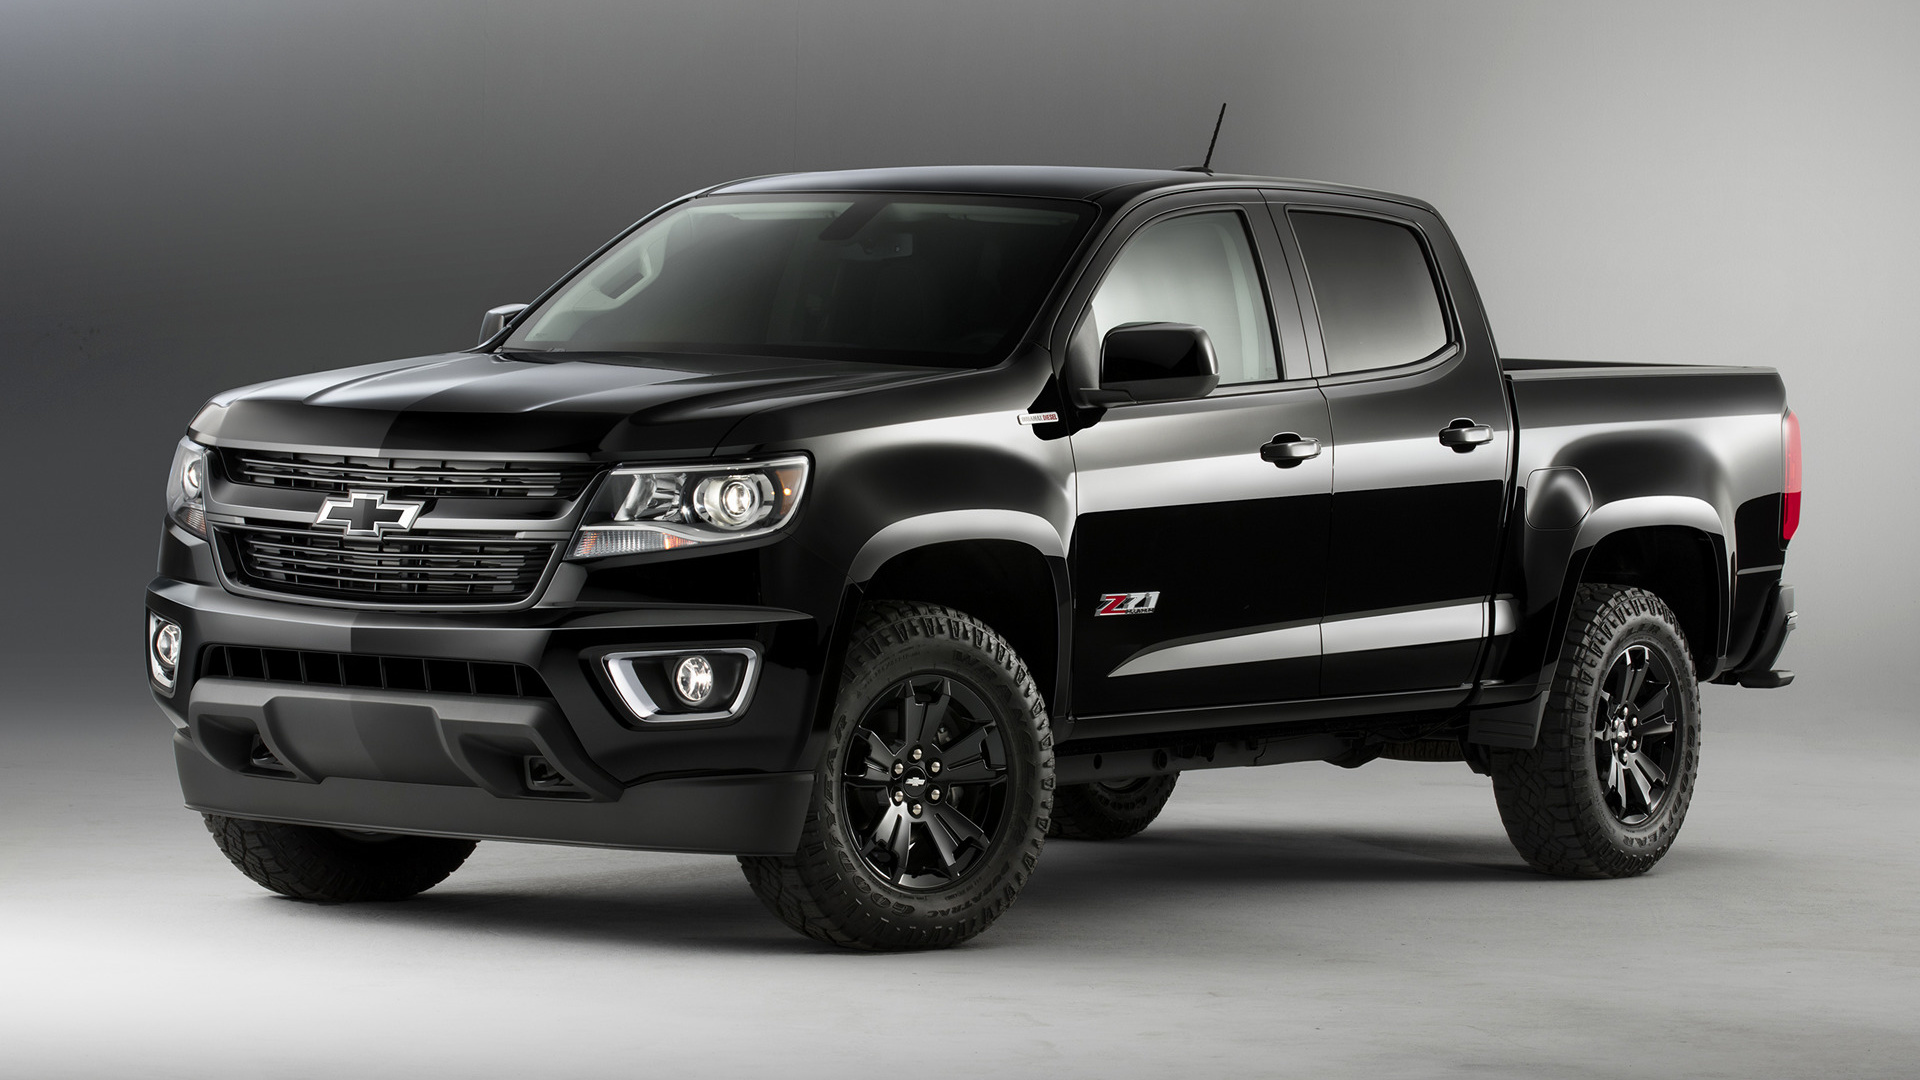 chevy z71 wallpapers - photo #17